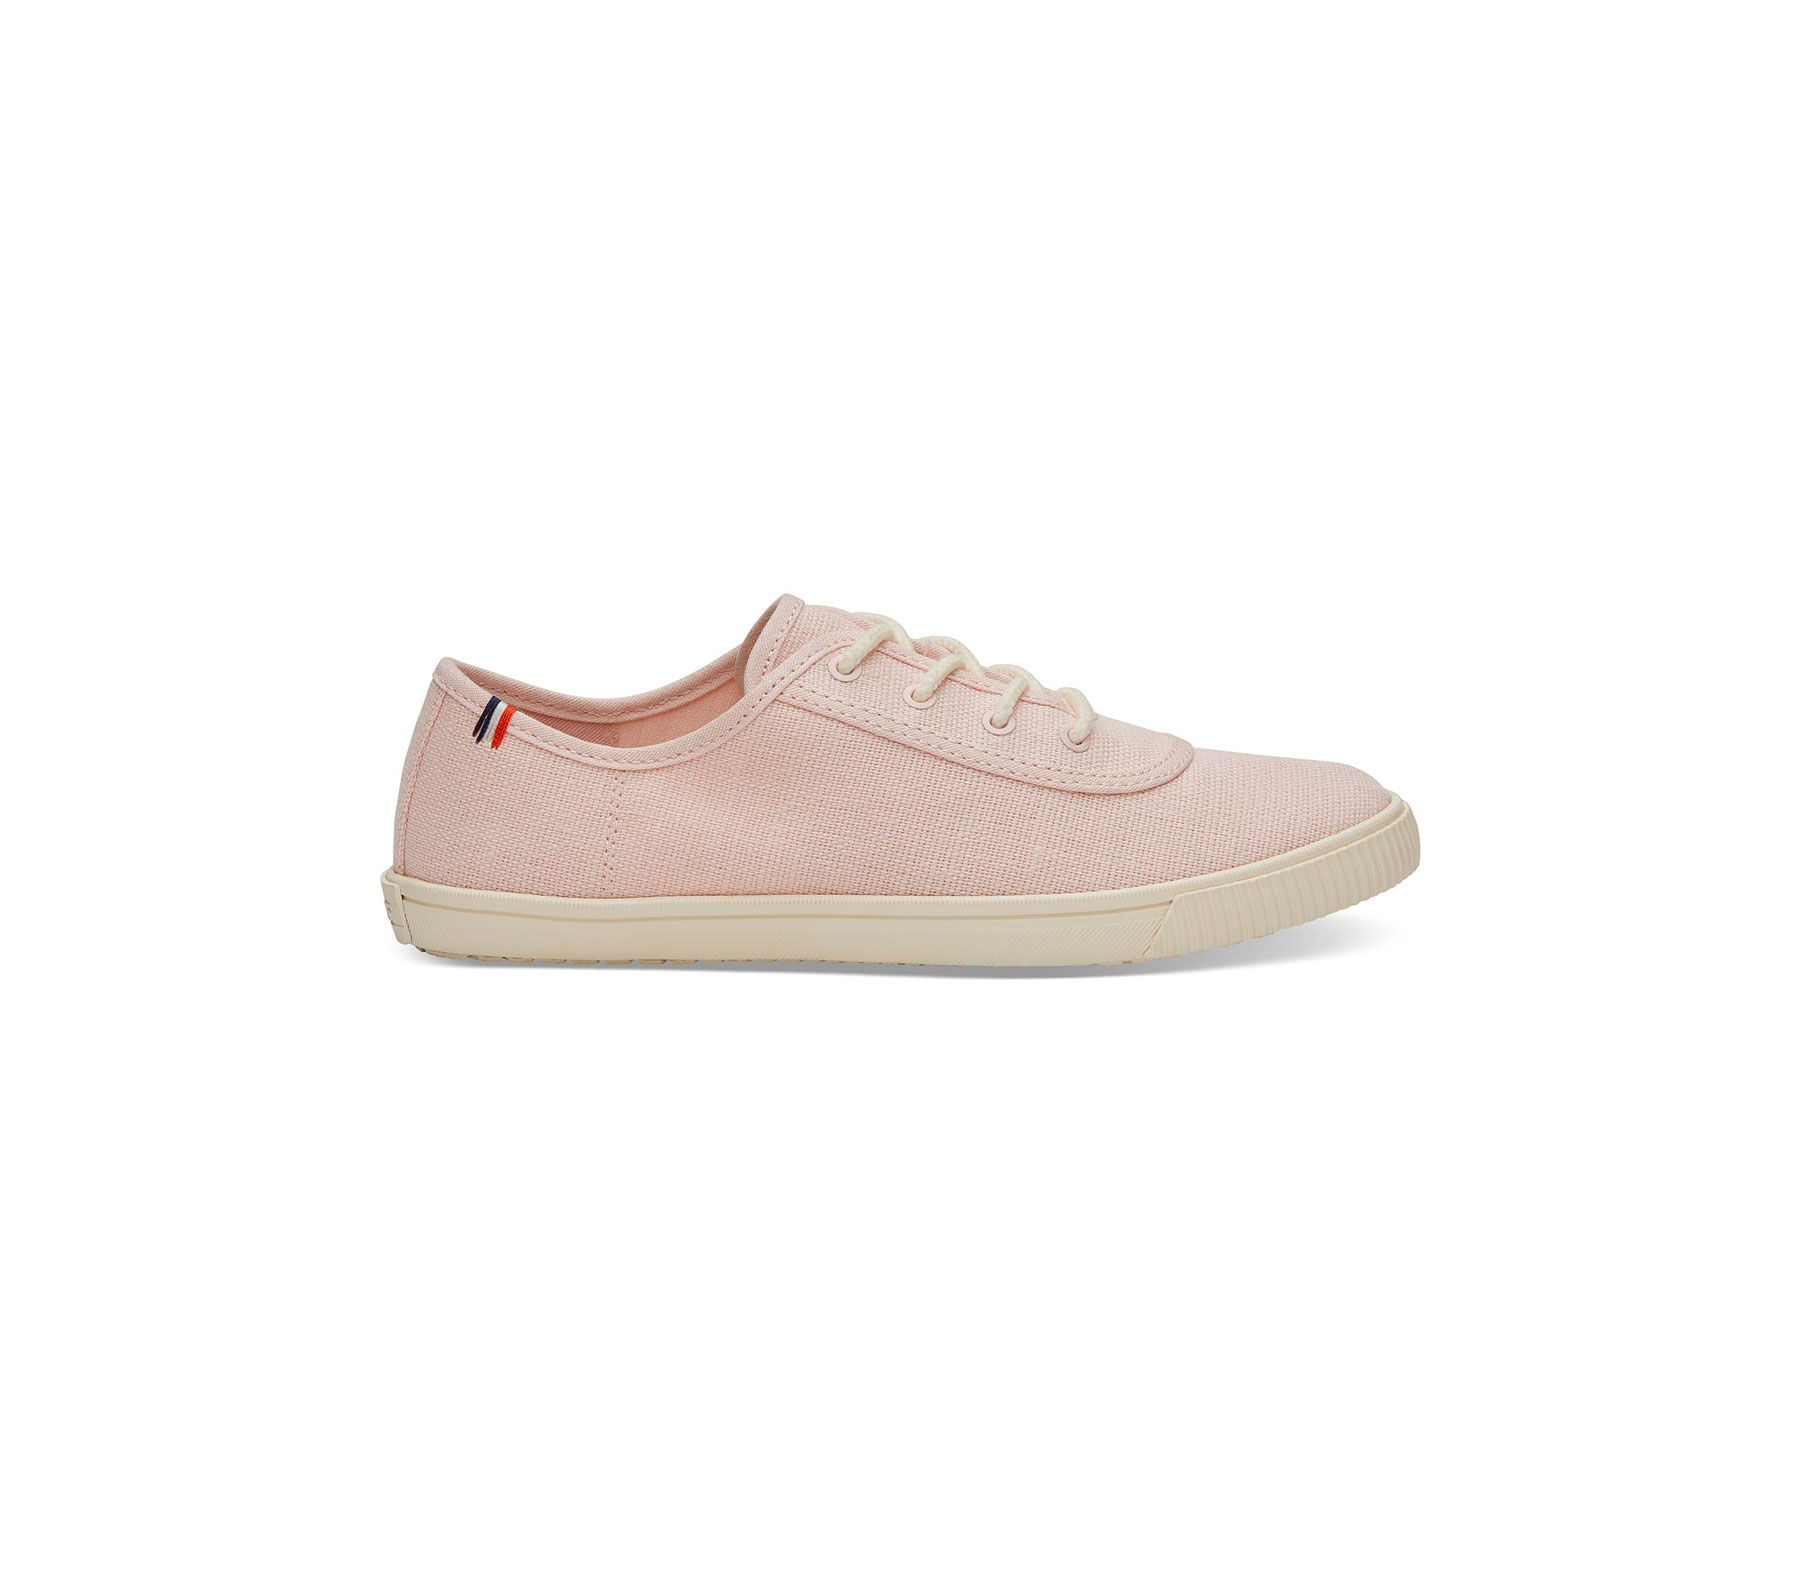 Pink Clare V. x TOMS sneaker